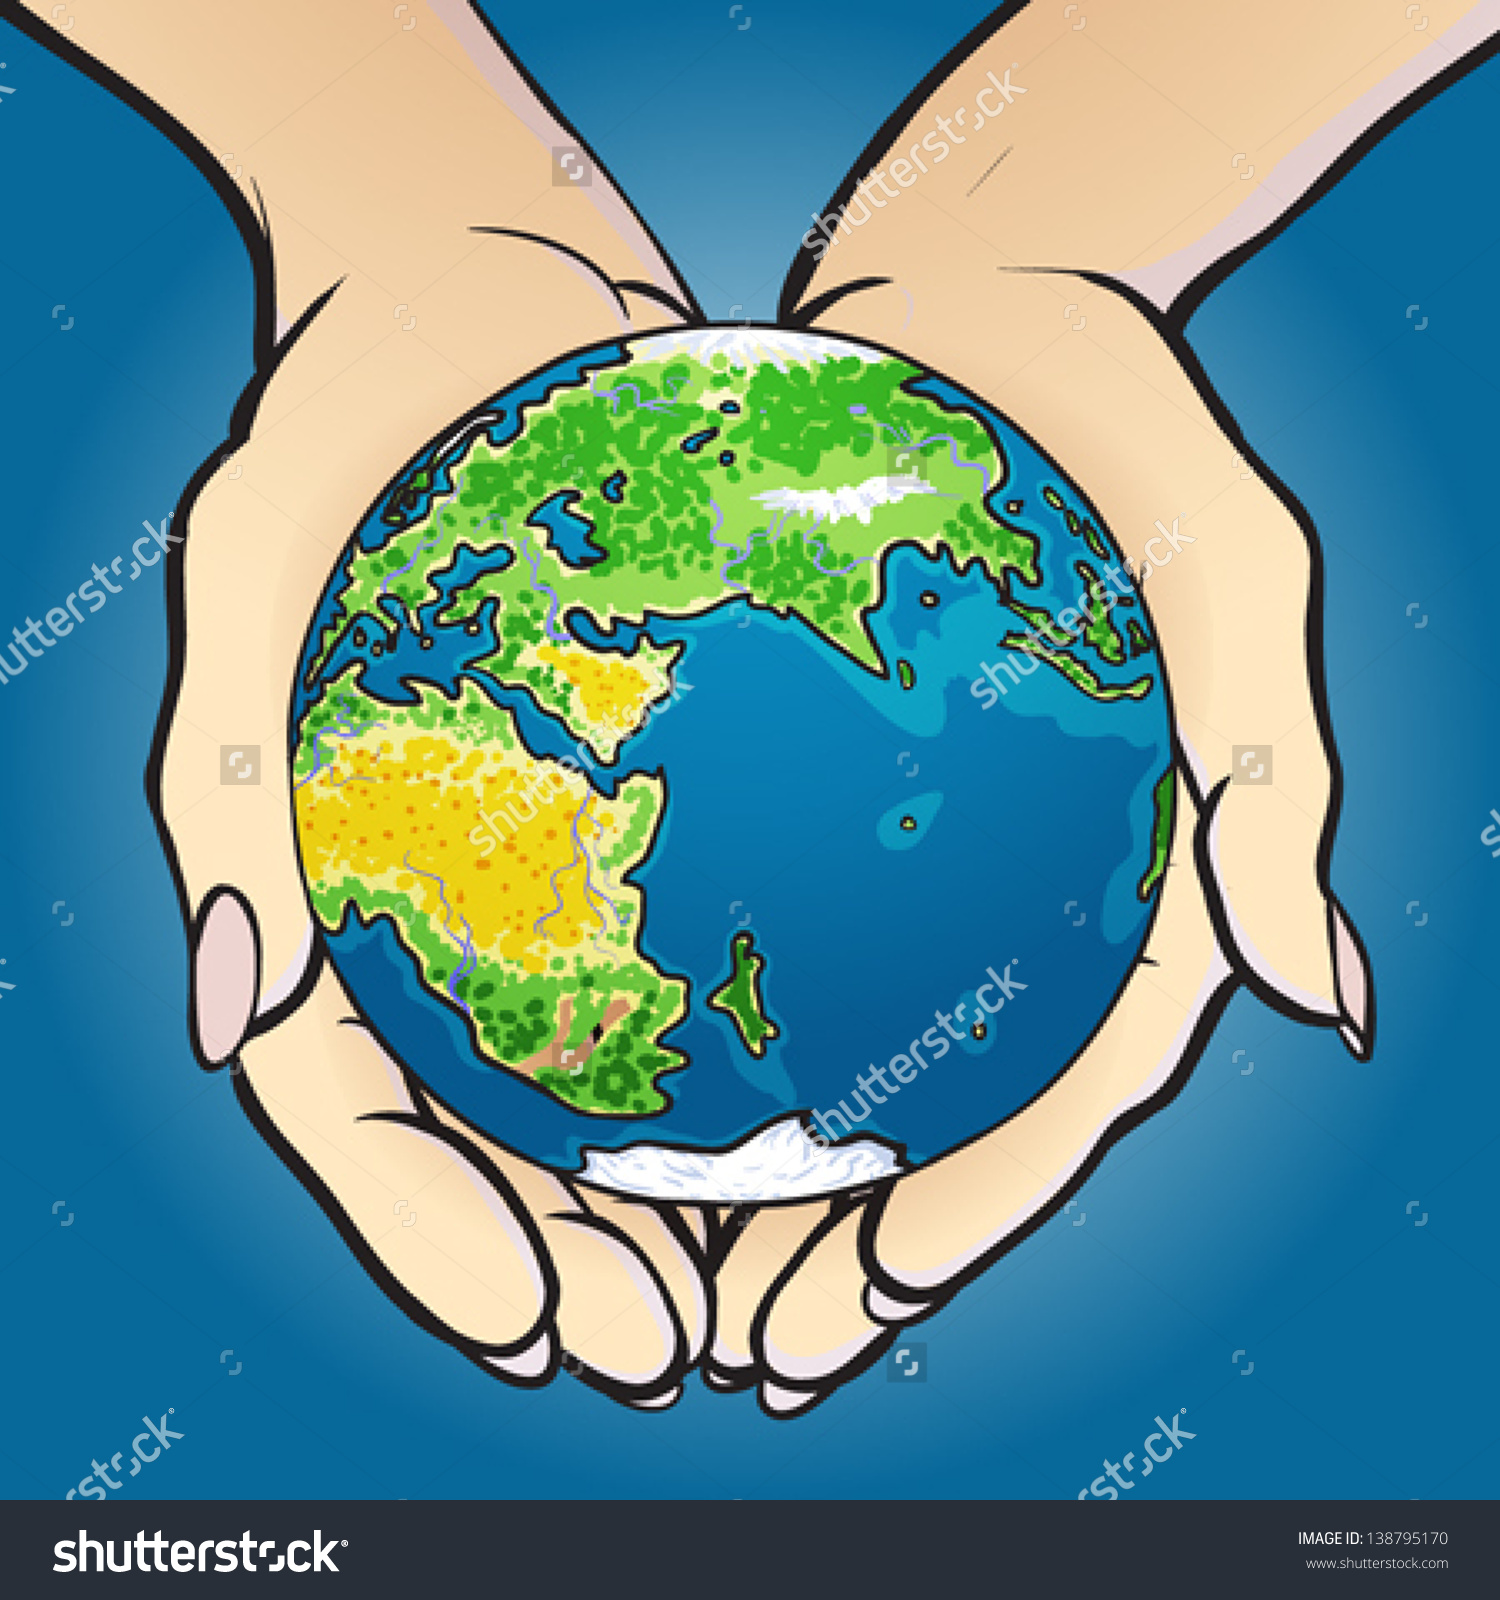 Vector Illustration Hands Holding Small Planet Stock Vector.